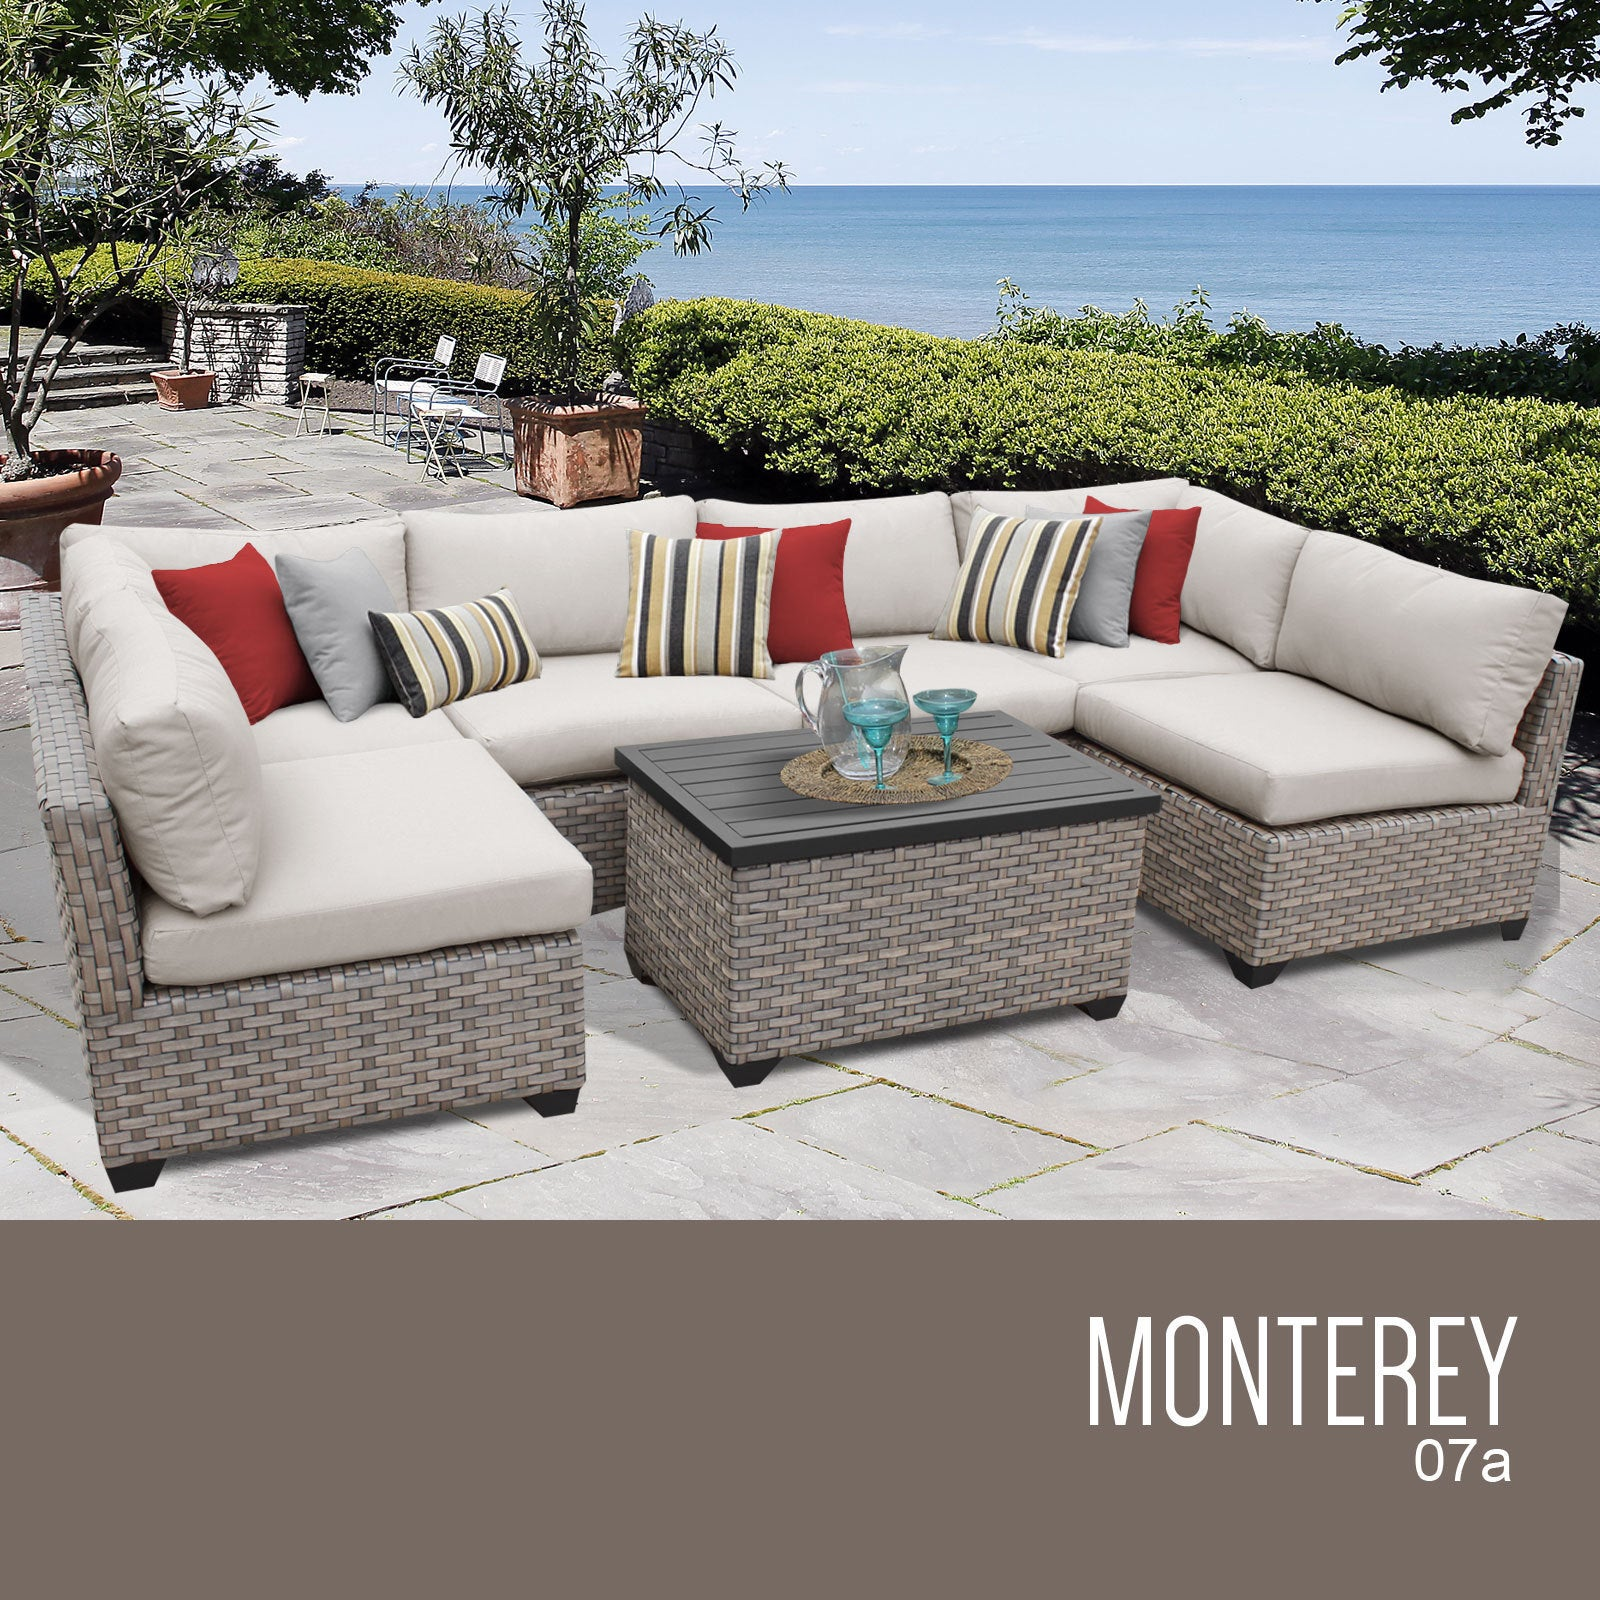 loveseat furniture sleeper unique of luxury wicker new outdoor sectional patio